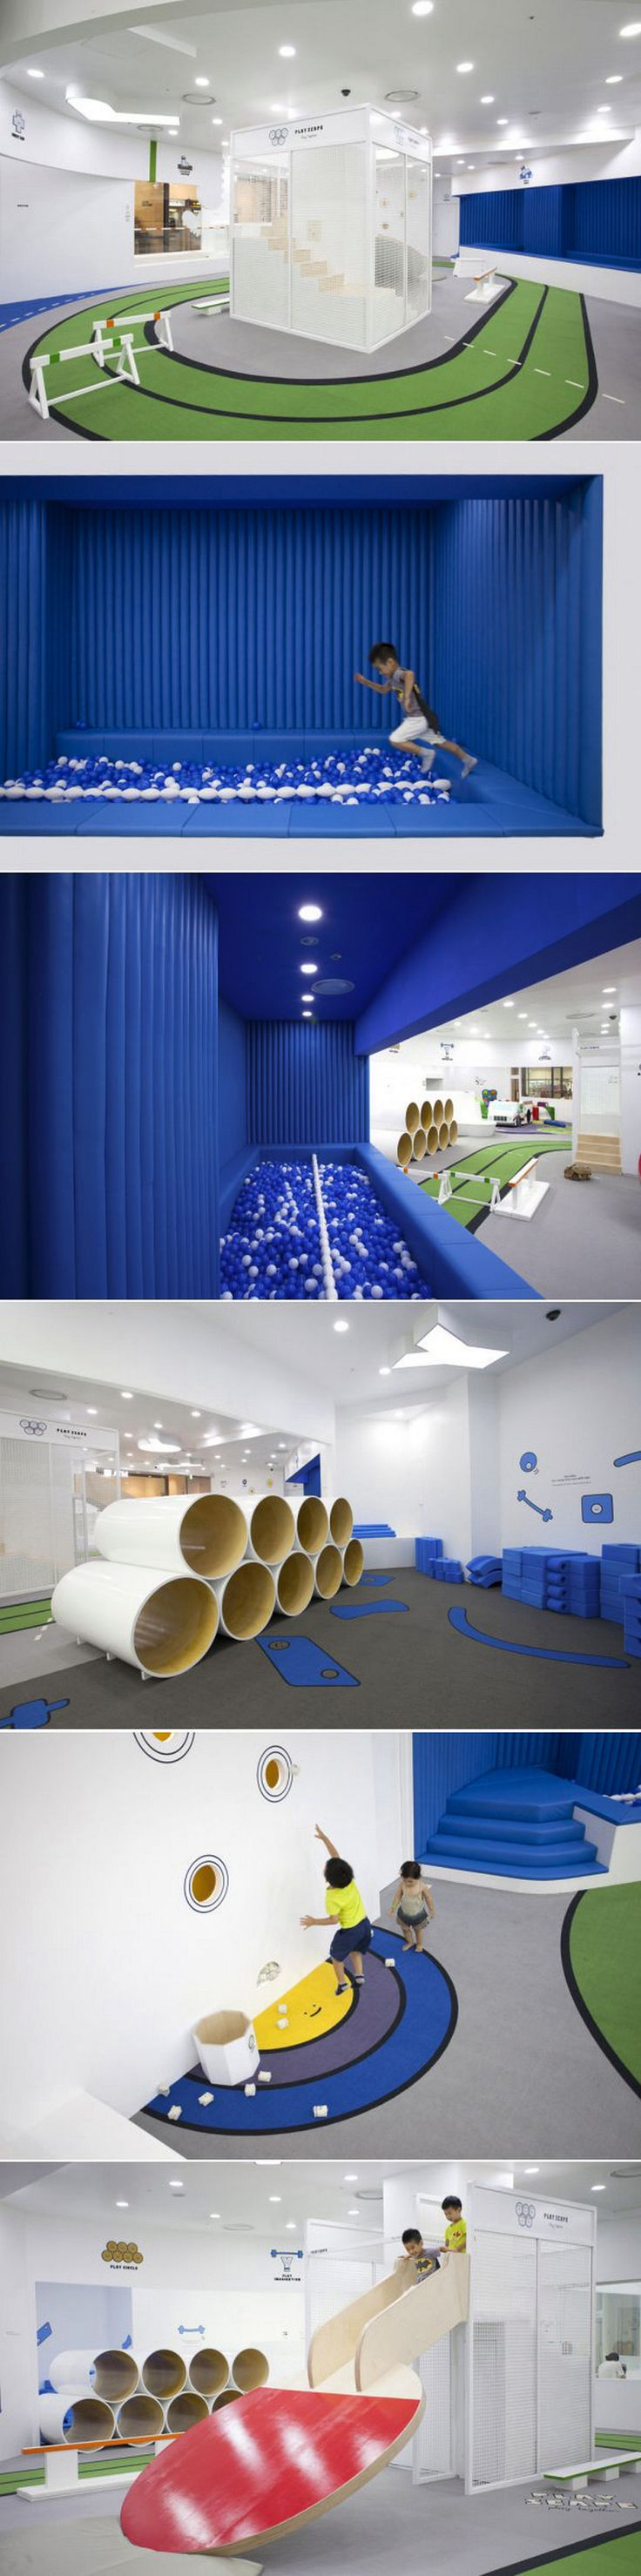 Delightful Modern Kids Cafe Interior Idea 76